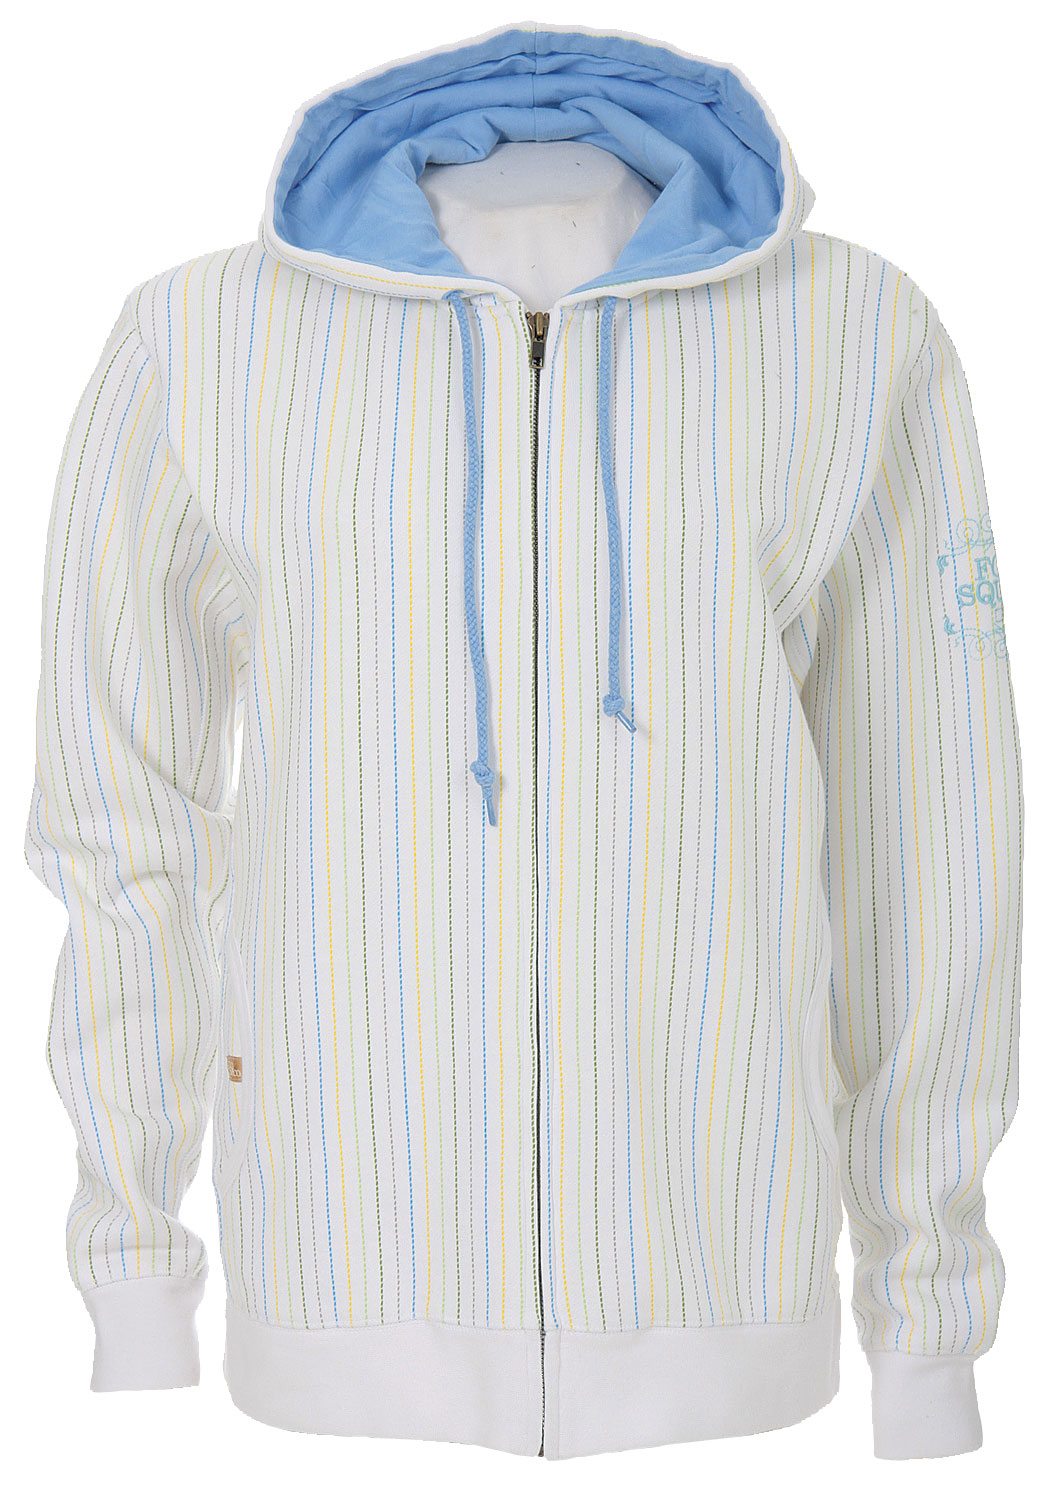 Snowboard The Foursquare Multicolor Pinstripe Zip Hoodie keeps things casual, but crisp. This 80% cotton 20% polyester jacket features and all over pinstripe design and felt Wordmark with stitch. The jersey hood lining and front pockets keep this hoodie functional on top of being fashionable. Its woman's sizing provides for a slightly contoured fit with a feminine flair. The Foursquare Multicolor Pinstripe Zip Hoodie will keep you looking cool and casual when the temperatures begin to drop.Key Features of The Foursquare Multicolor Pinstripe Hoodie: 80% Cotton / 20% Polyester / 360gm All Over Multicolor Pinstripe Felt Wordmark with Stitch Jersey Hood Lining - $29.95